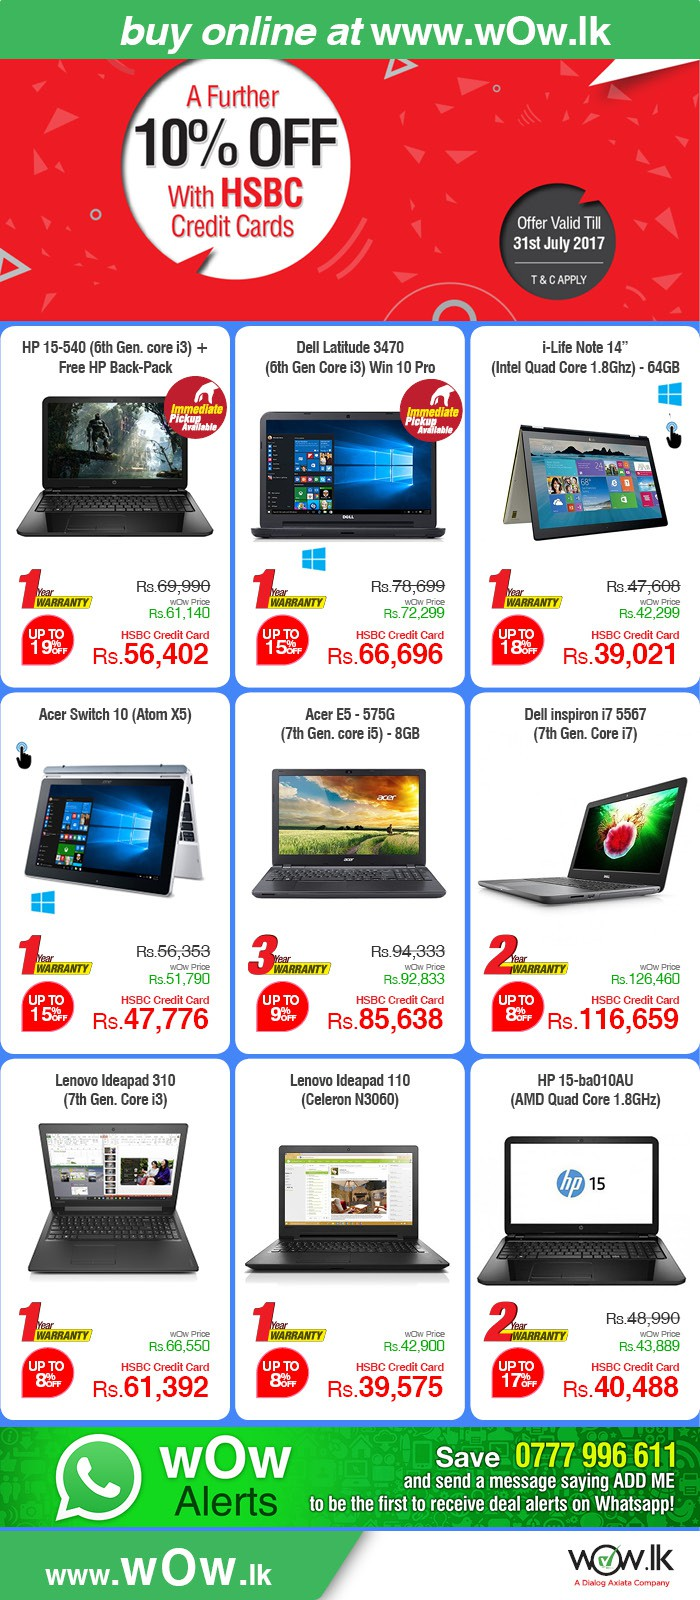 http://www.wow.lk/mall/buyonline/laptops/?Ns=sku.inventoryAvailability%7C0&utm_source=dailymail&utm_medium=newsletter&utm_campaign=laptops